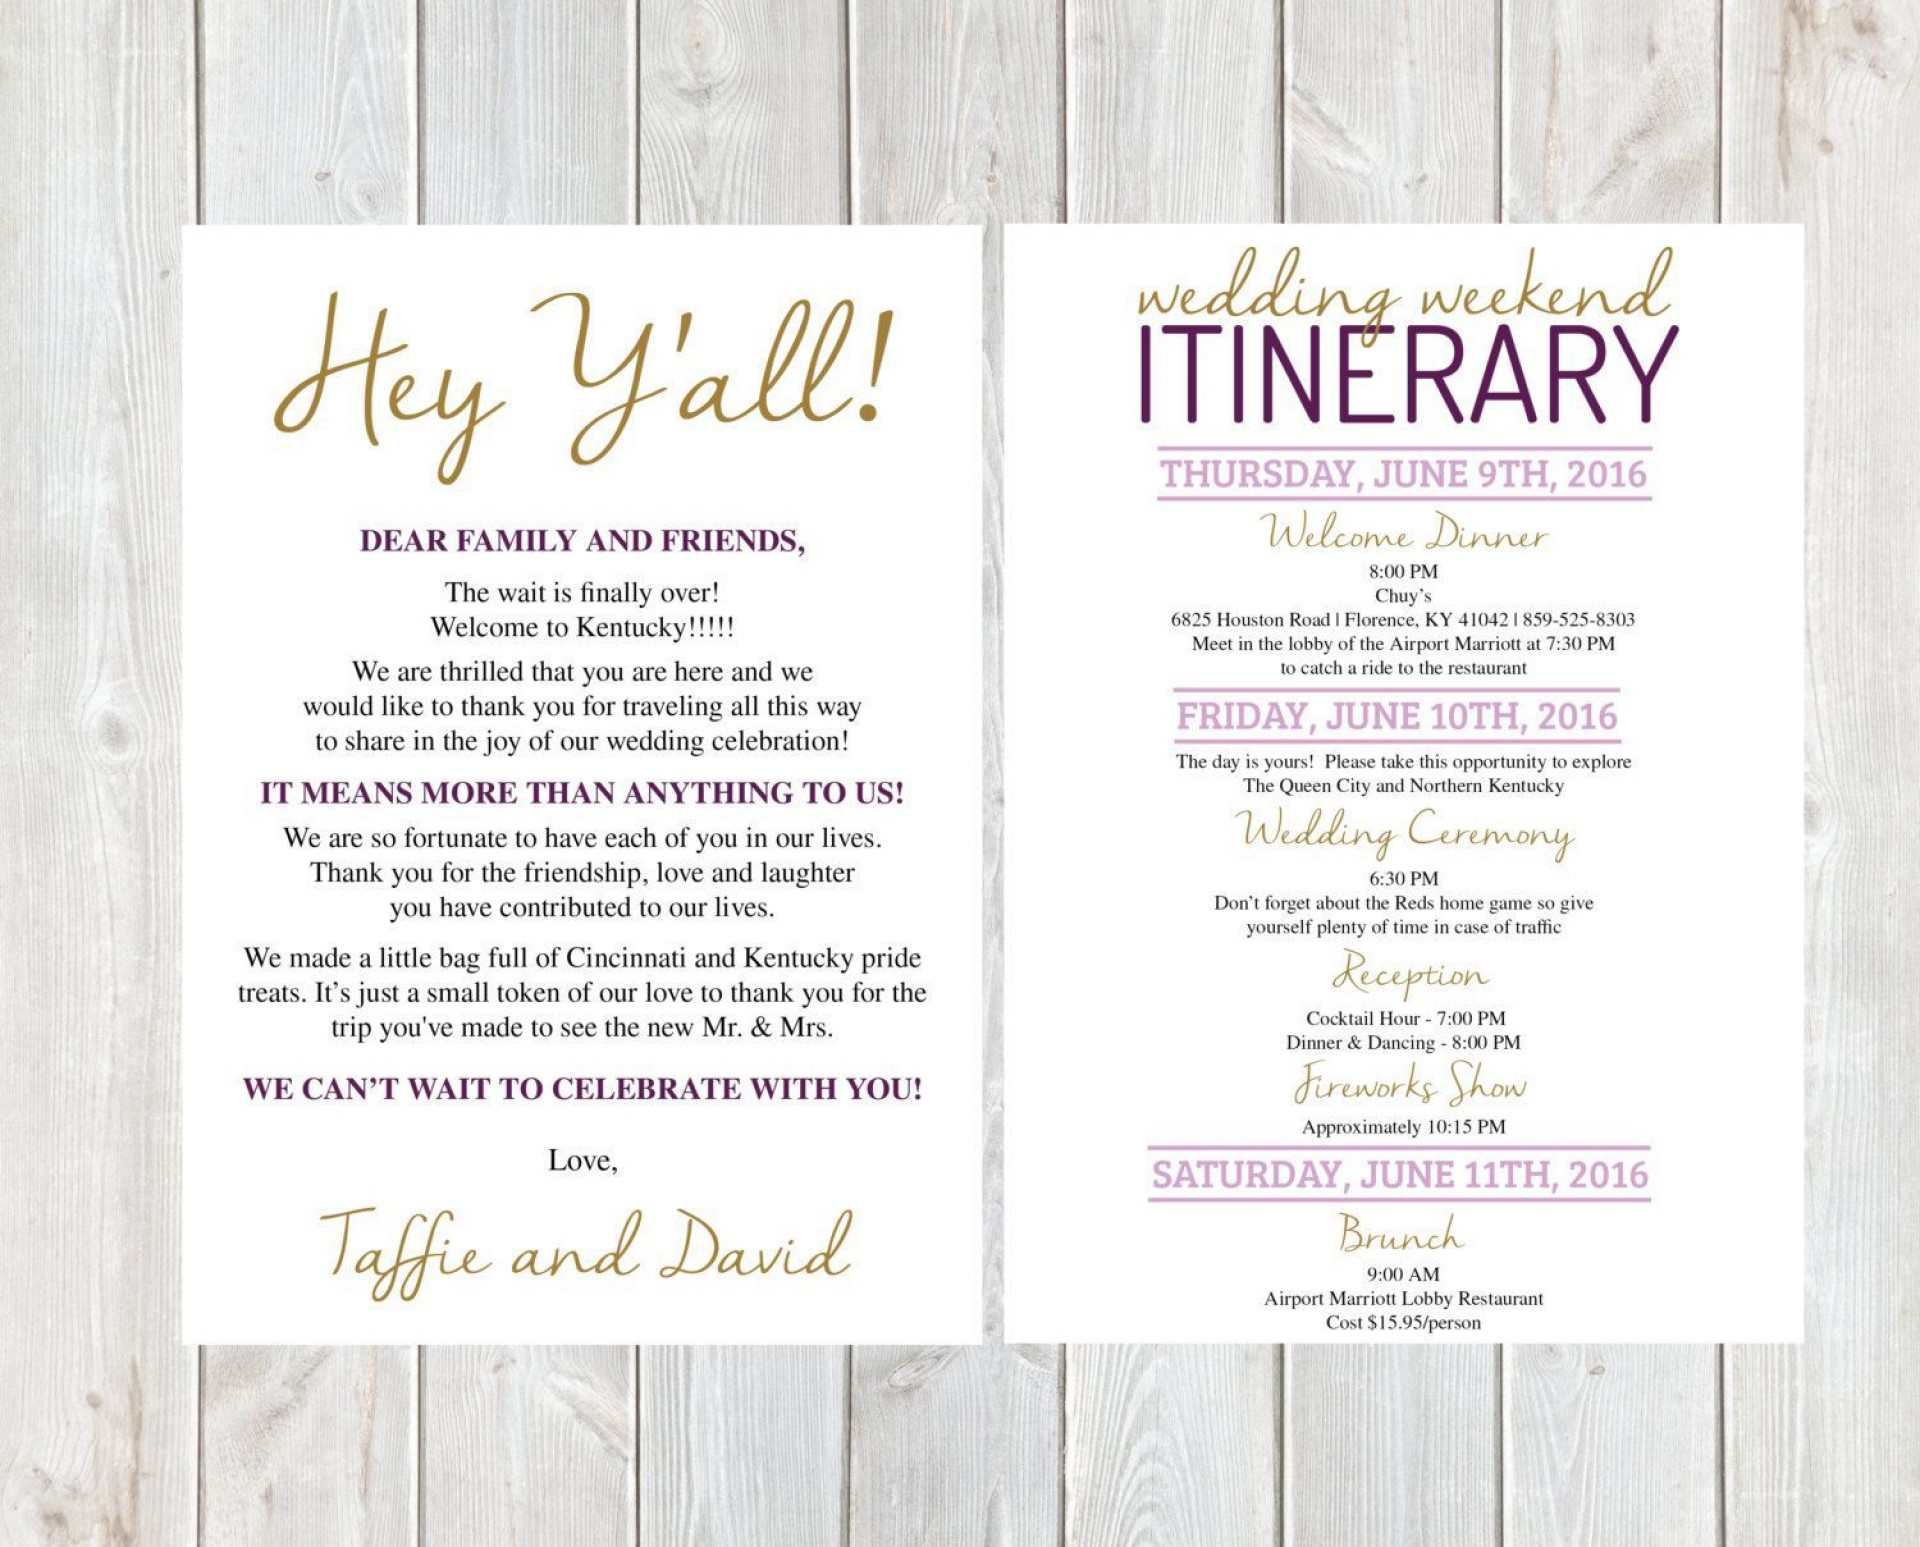 004 Unique Wedding Welcome Bag Letter Template Free Highest Clarity 1920